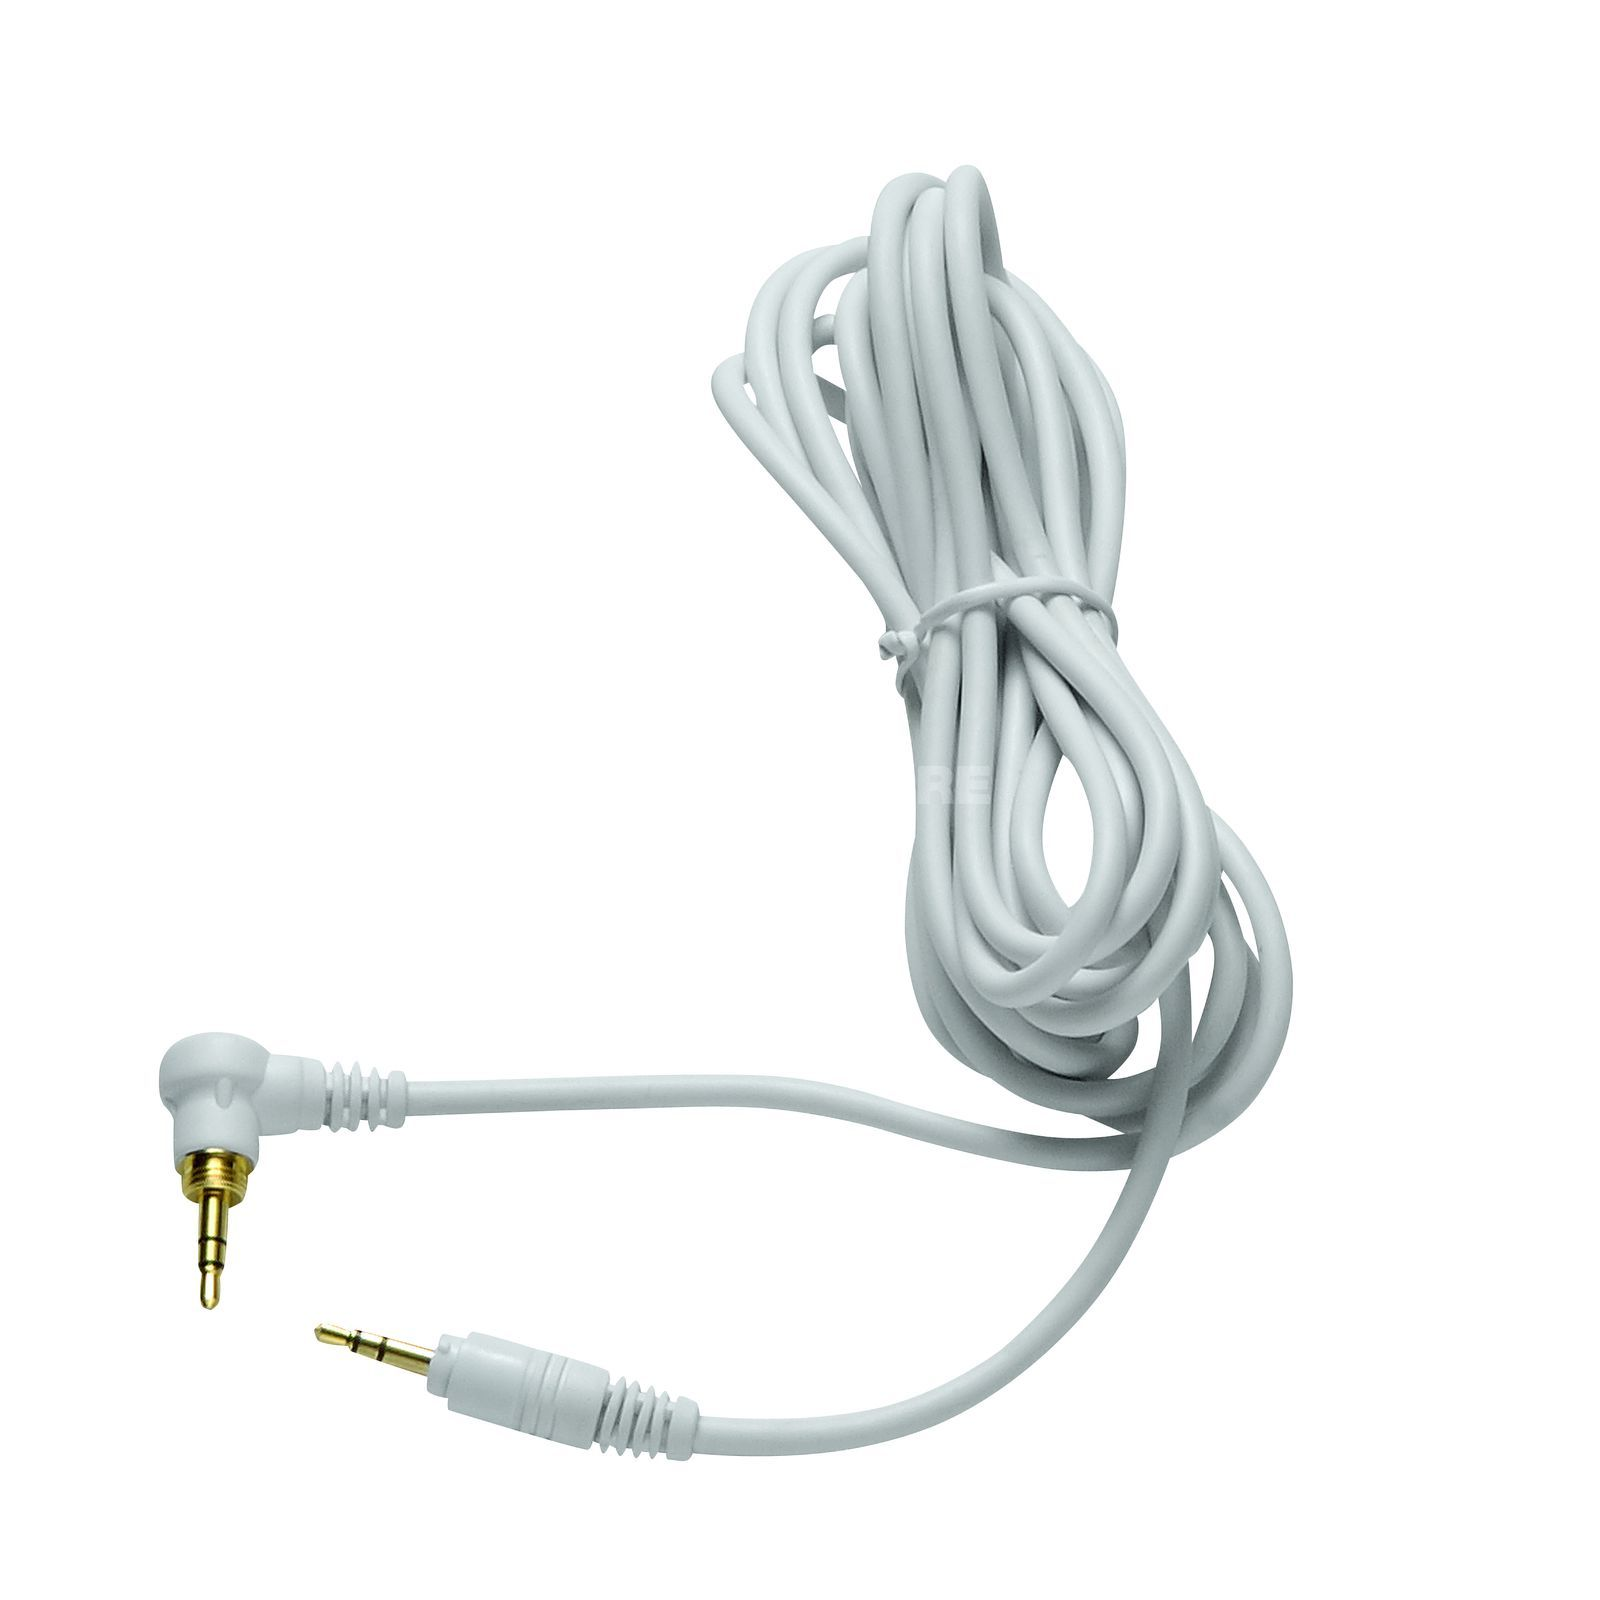 Reloop Replacement Cable for RHP-10/RH-3500 Standard white Produktbillede